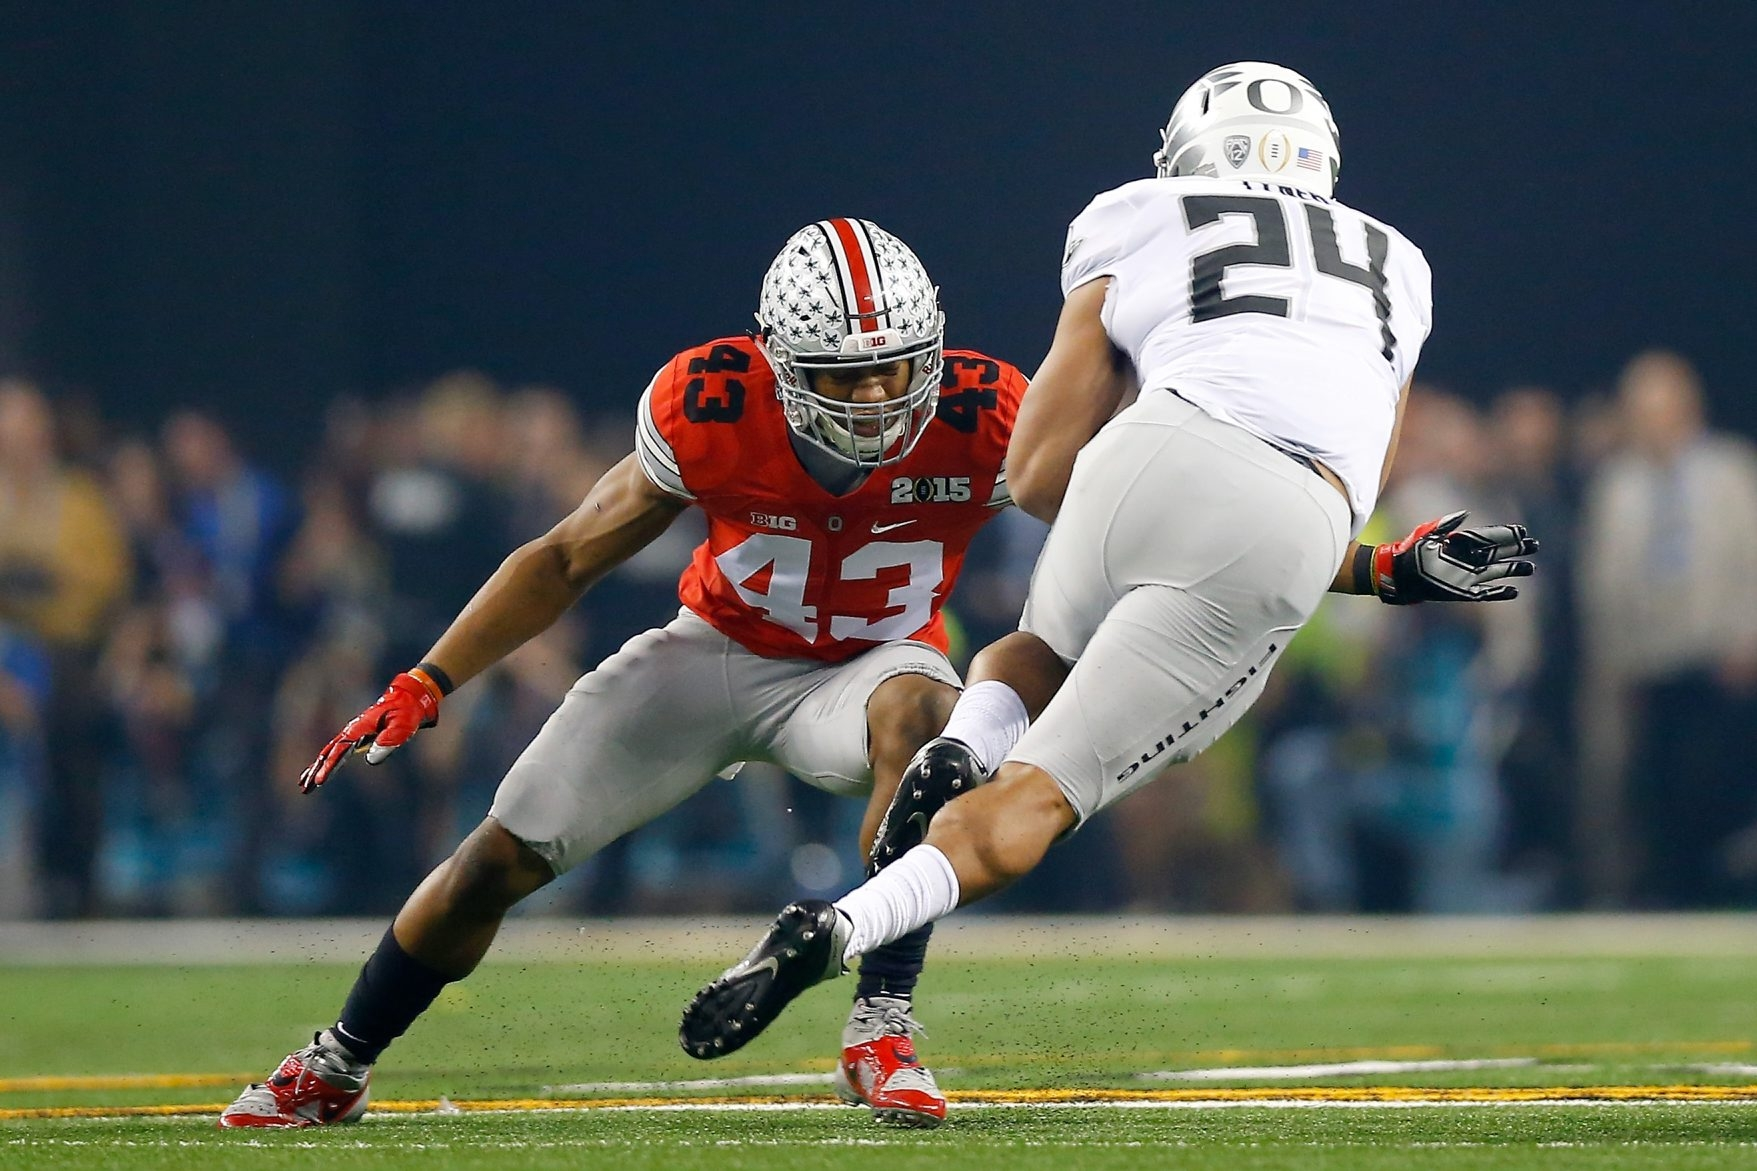 Darron Lee (43) of Ohio State has shown he has a knack for disrupting offenses, whether he's making tackles for losses or providing coverage on tight ends or running backs.